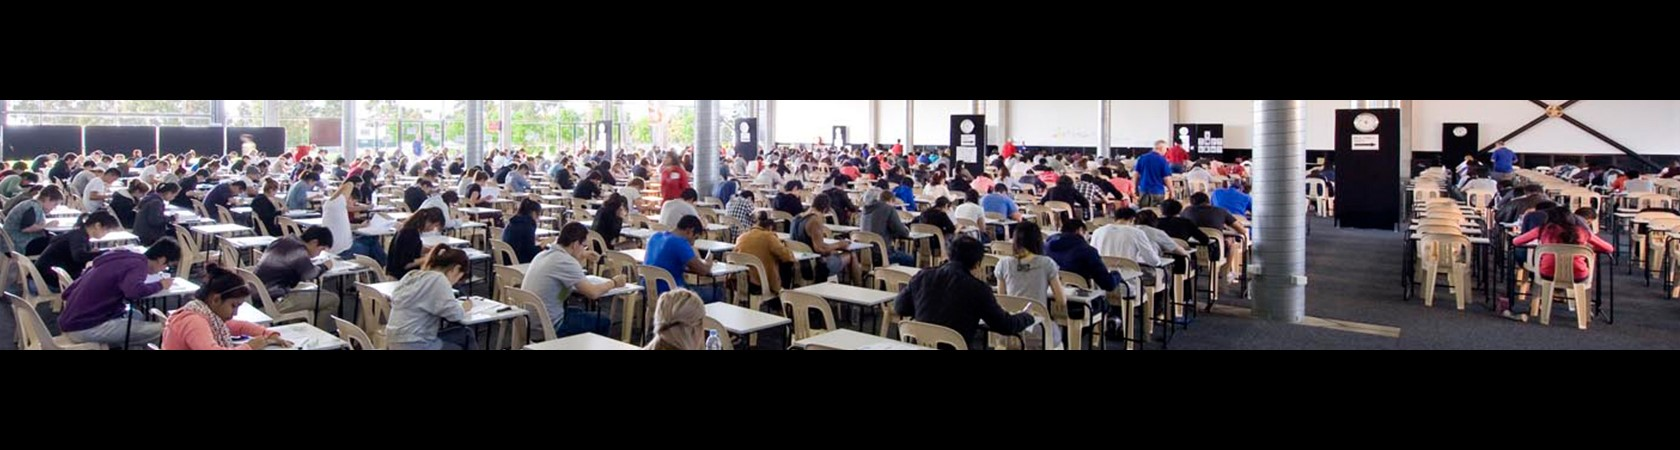 Victoria University End of Year Exams 2017